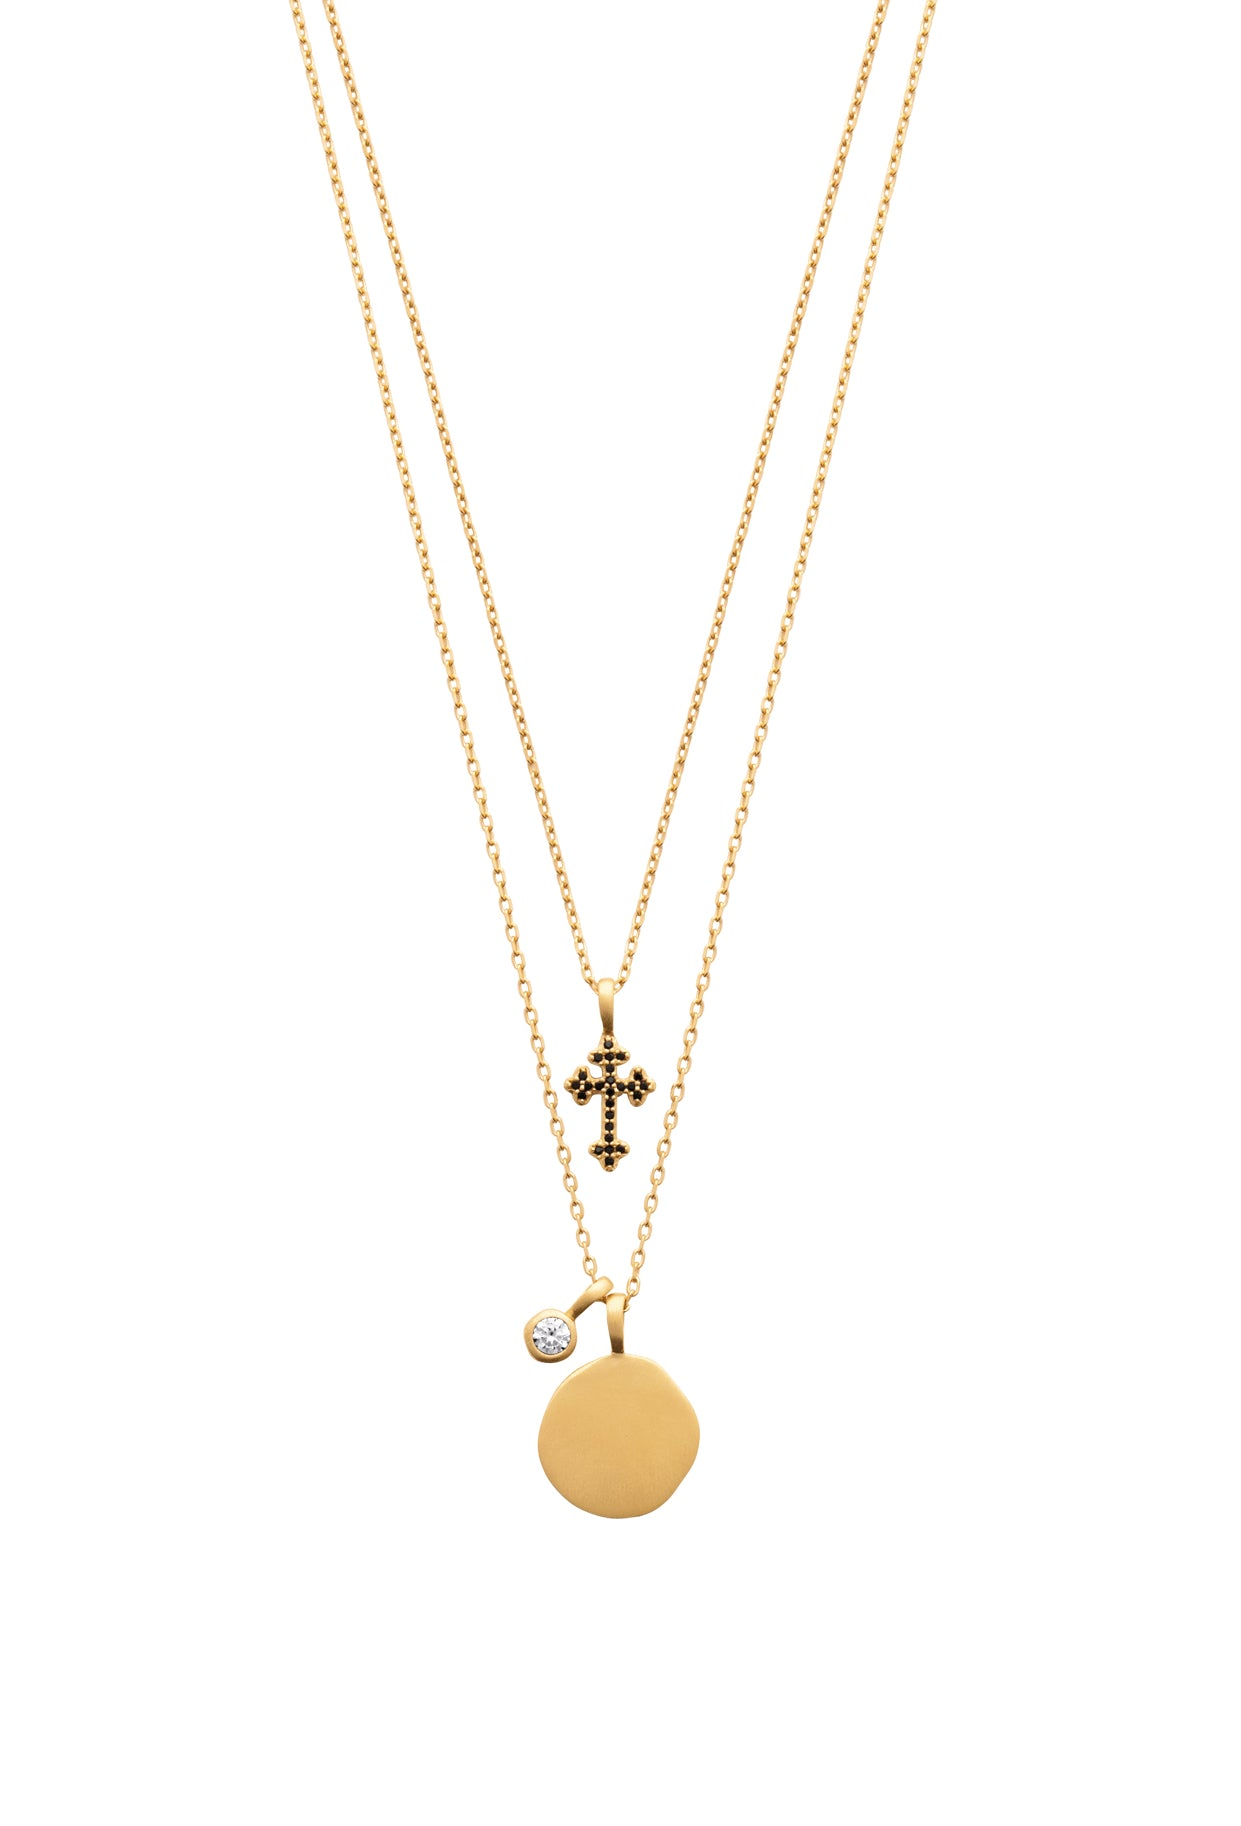 Gold Sphere Pendant with Cross Multi-Chain Necklace